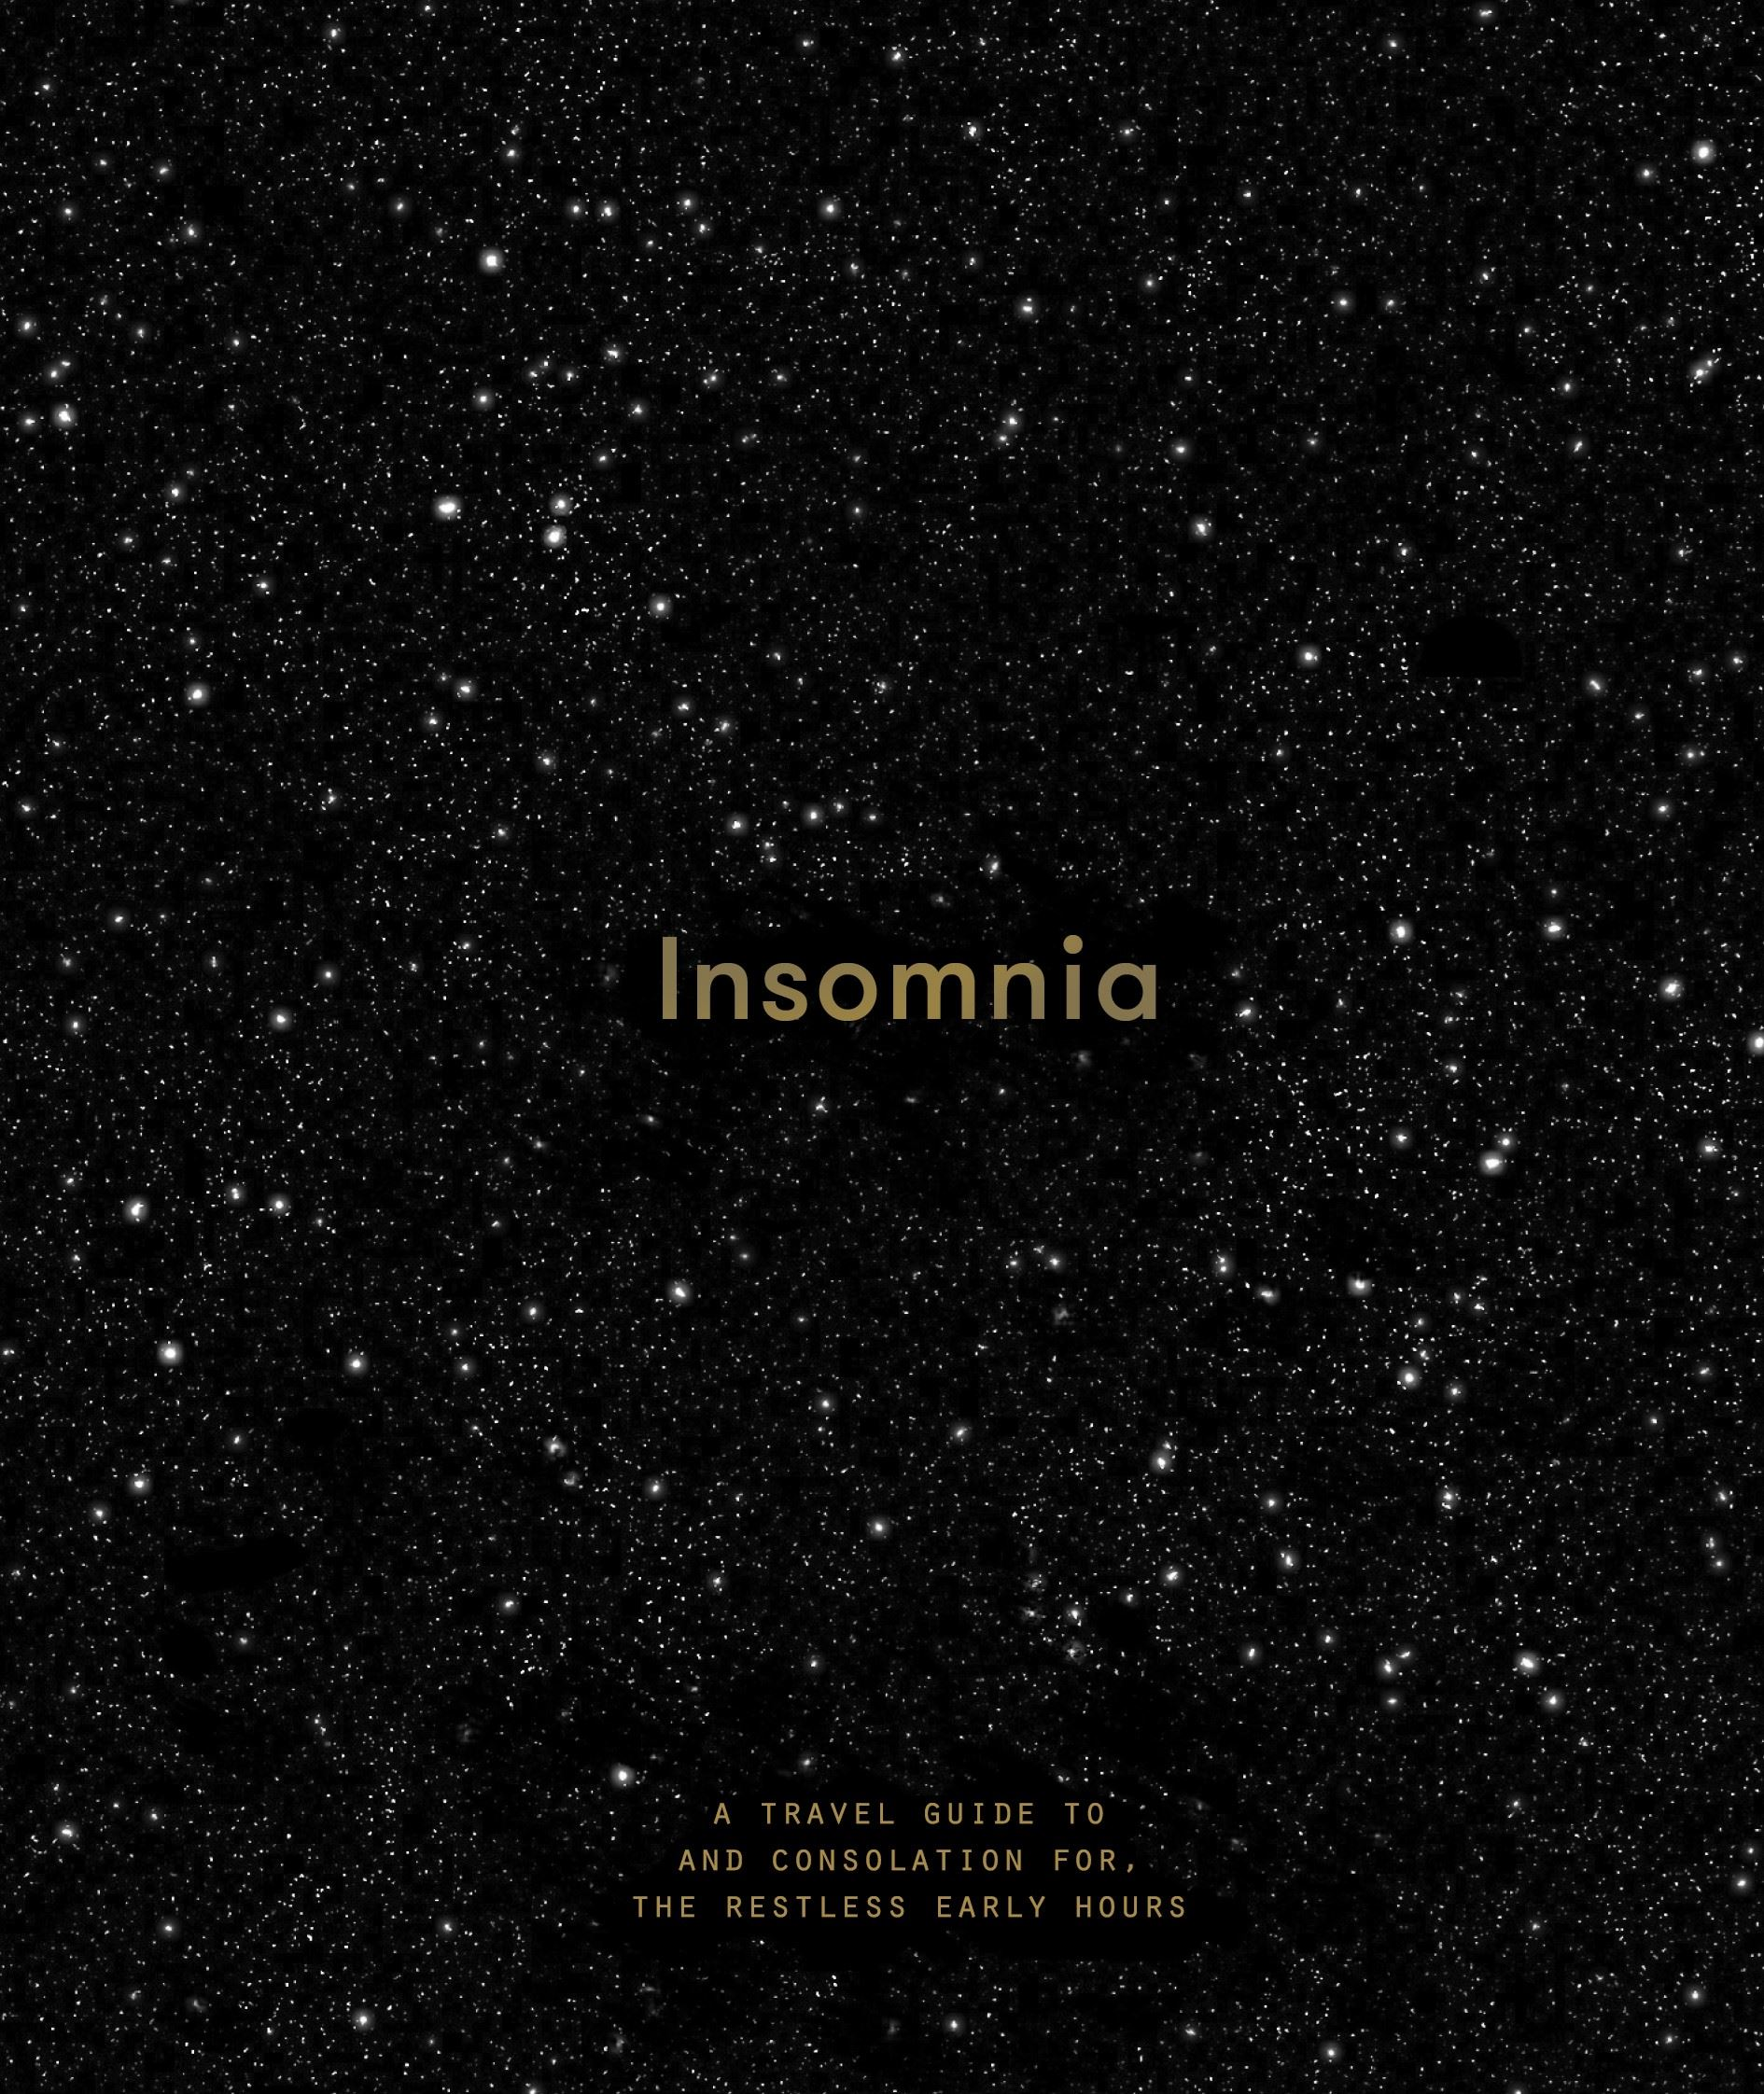 The School of Life - Insomnia